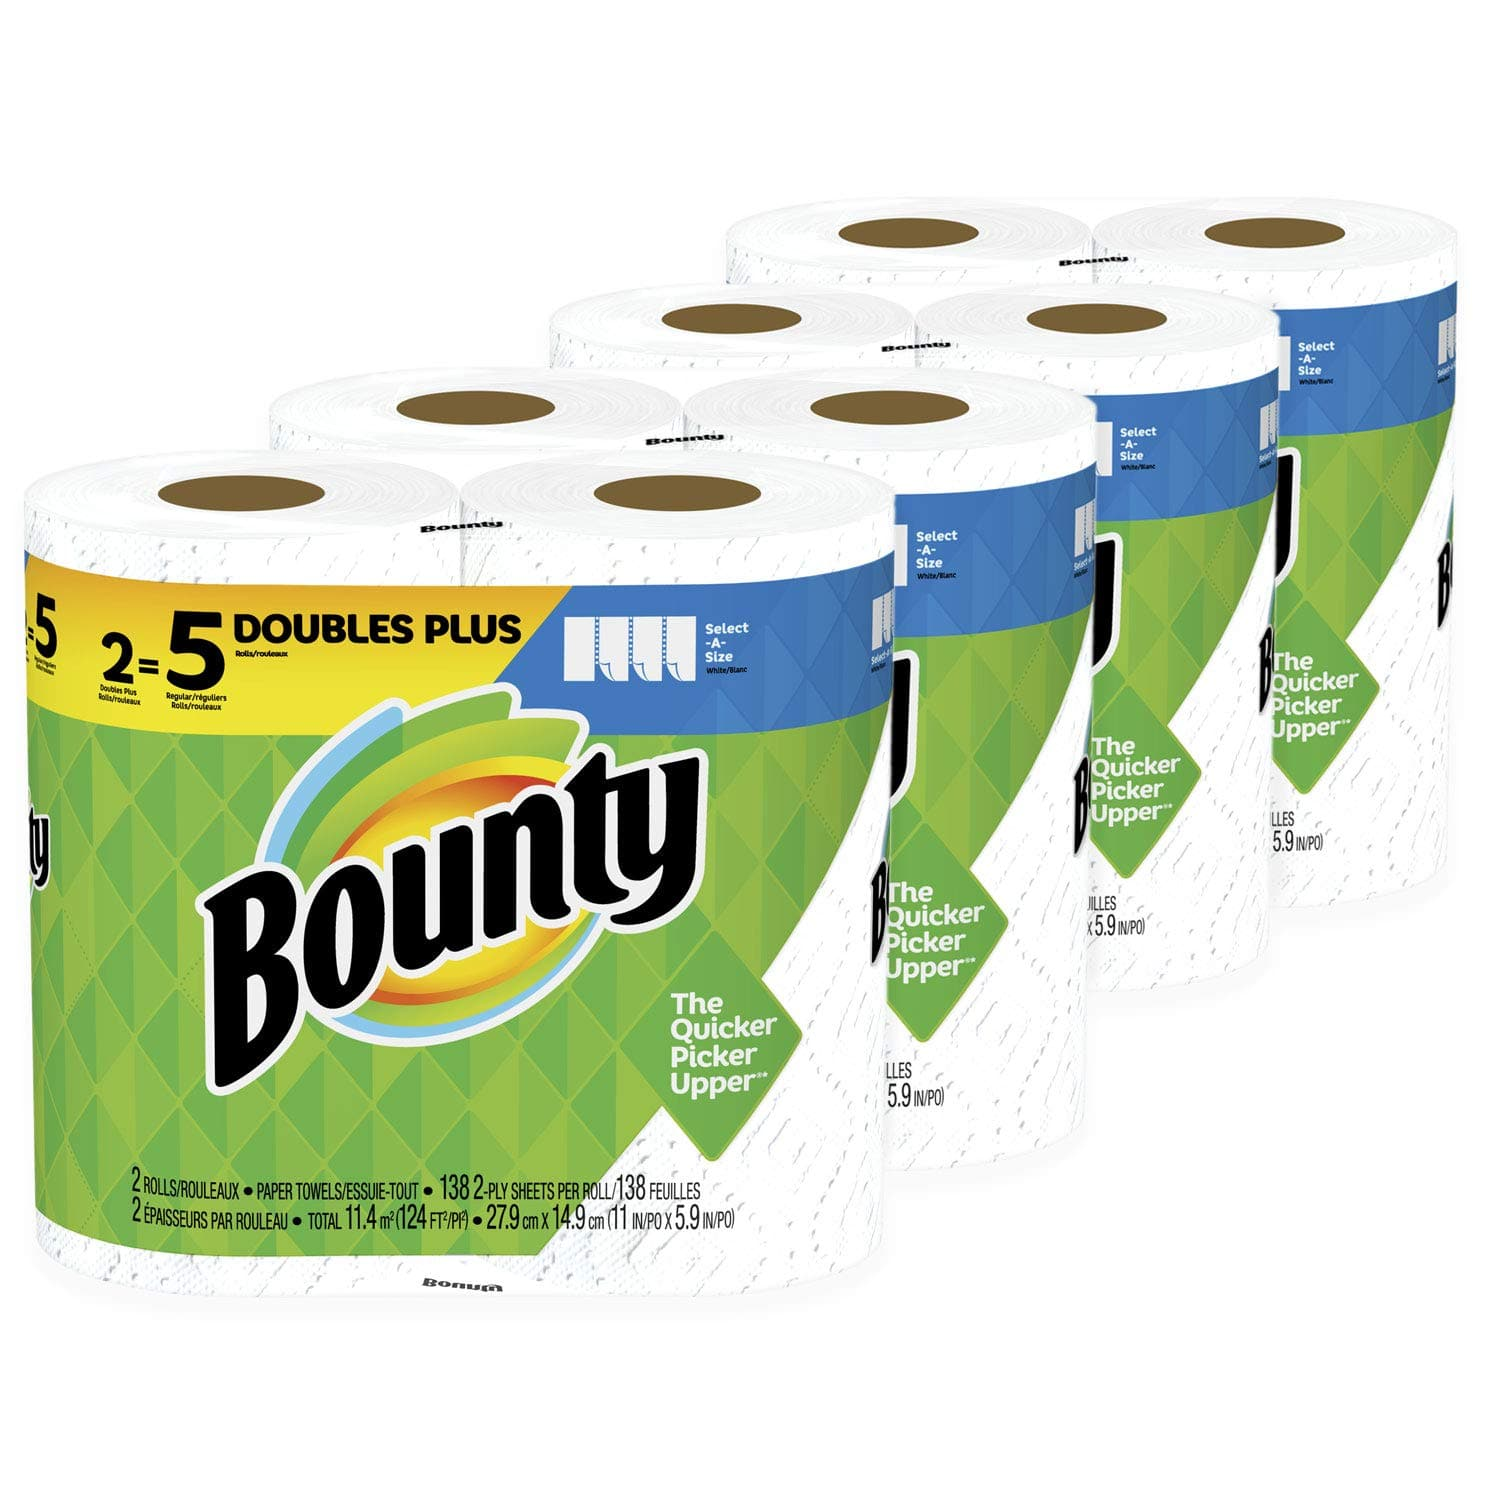 24-Count Bounty Select-A-Size Doubles Plus Rolls Paper Towels